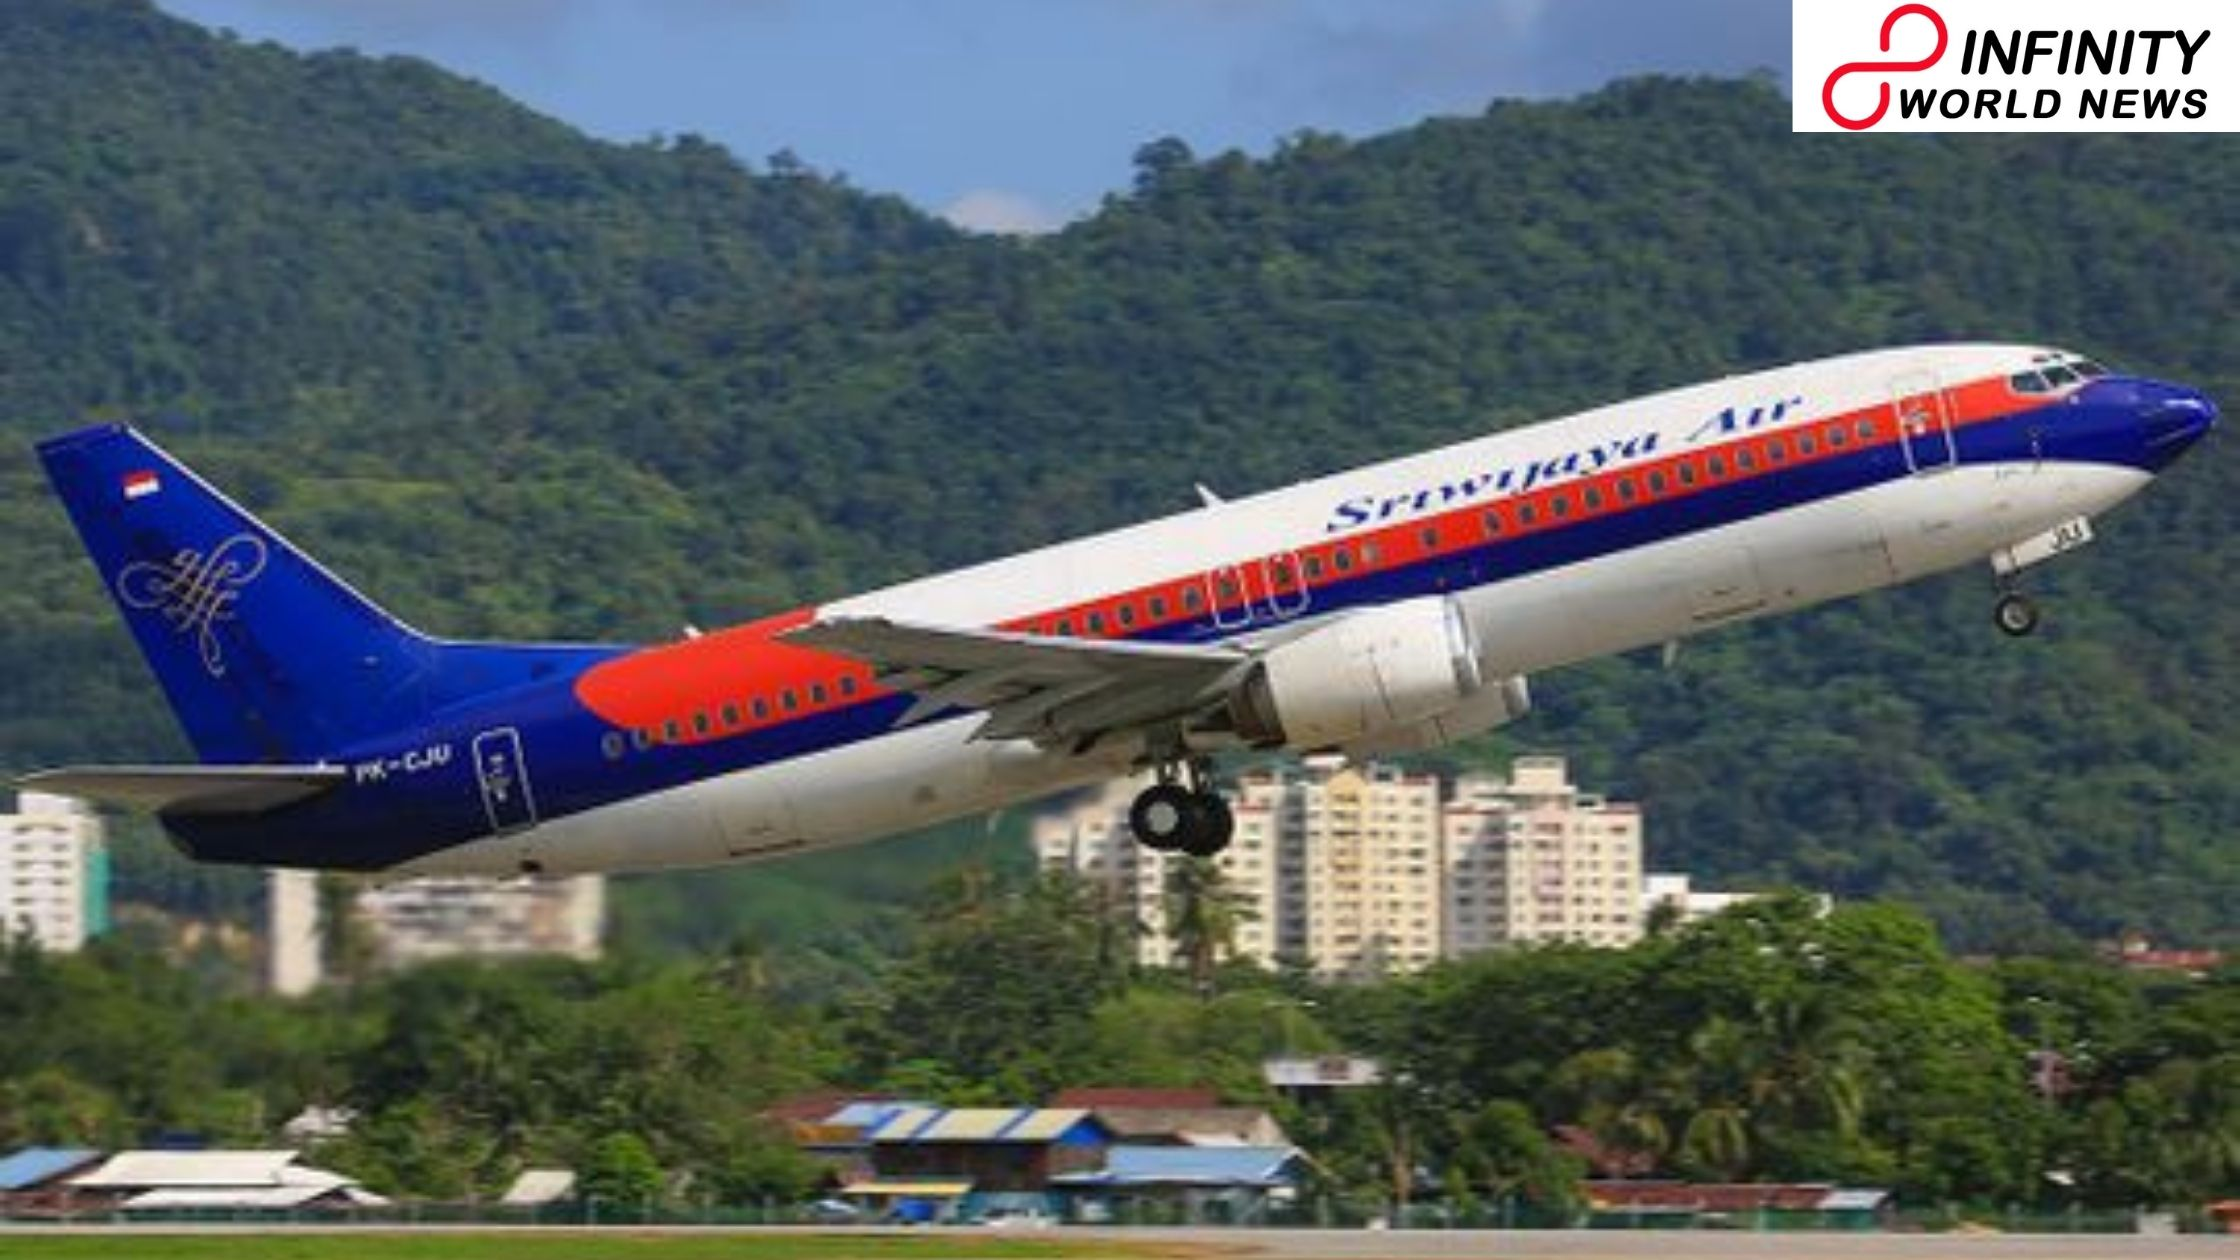 Sriwijaya Air Boeing 737 traveller plane dreaded to have smashed in Indonesia